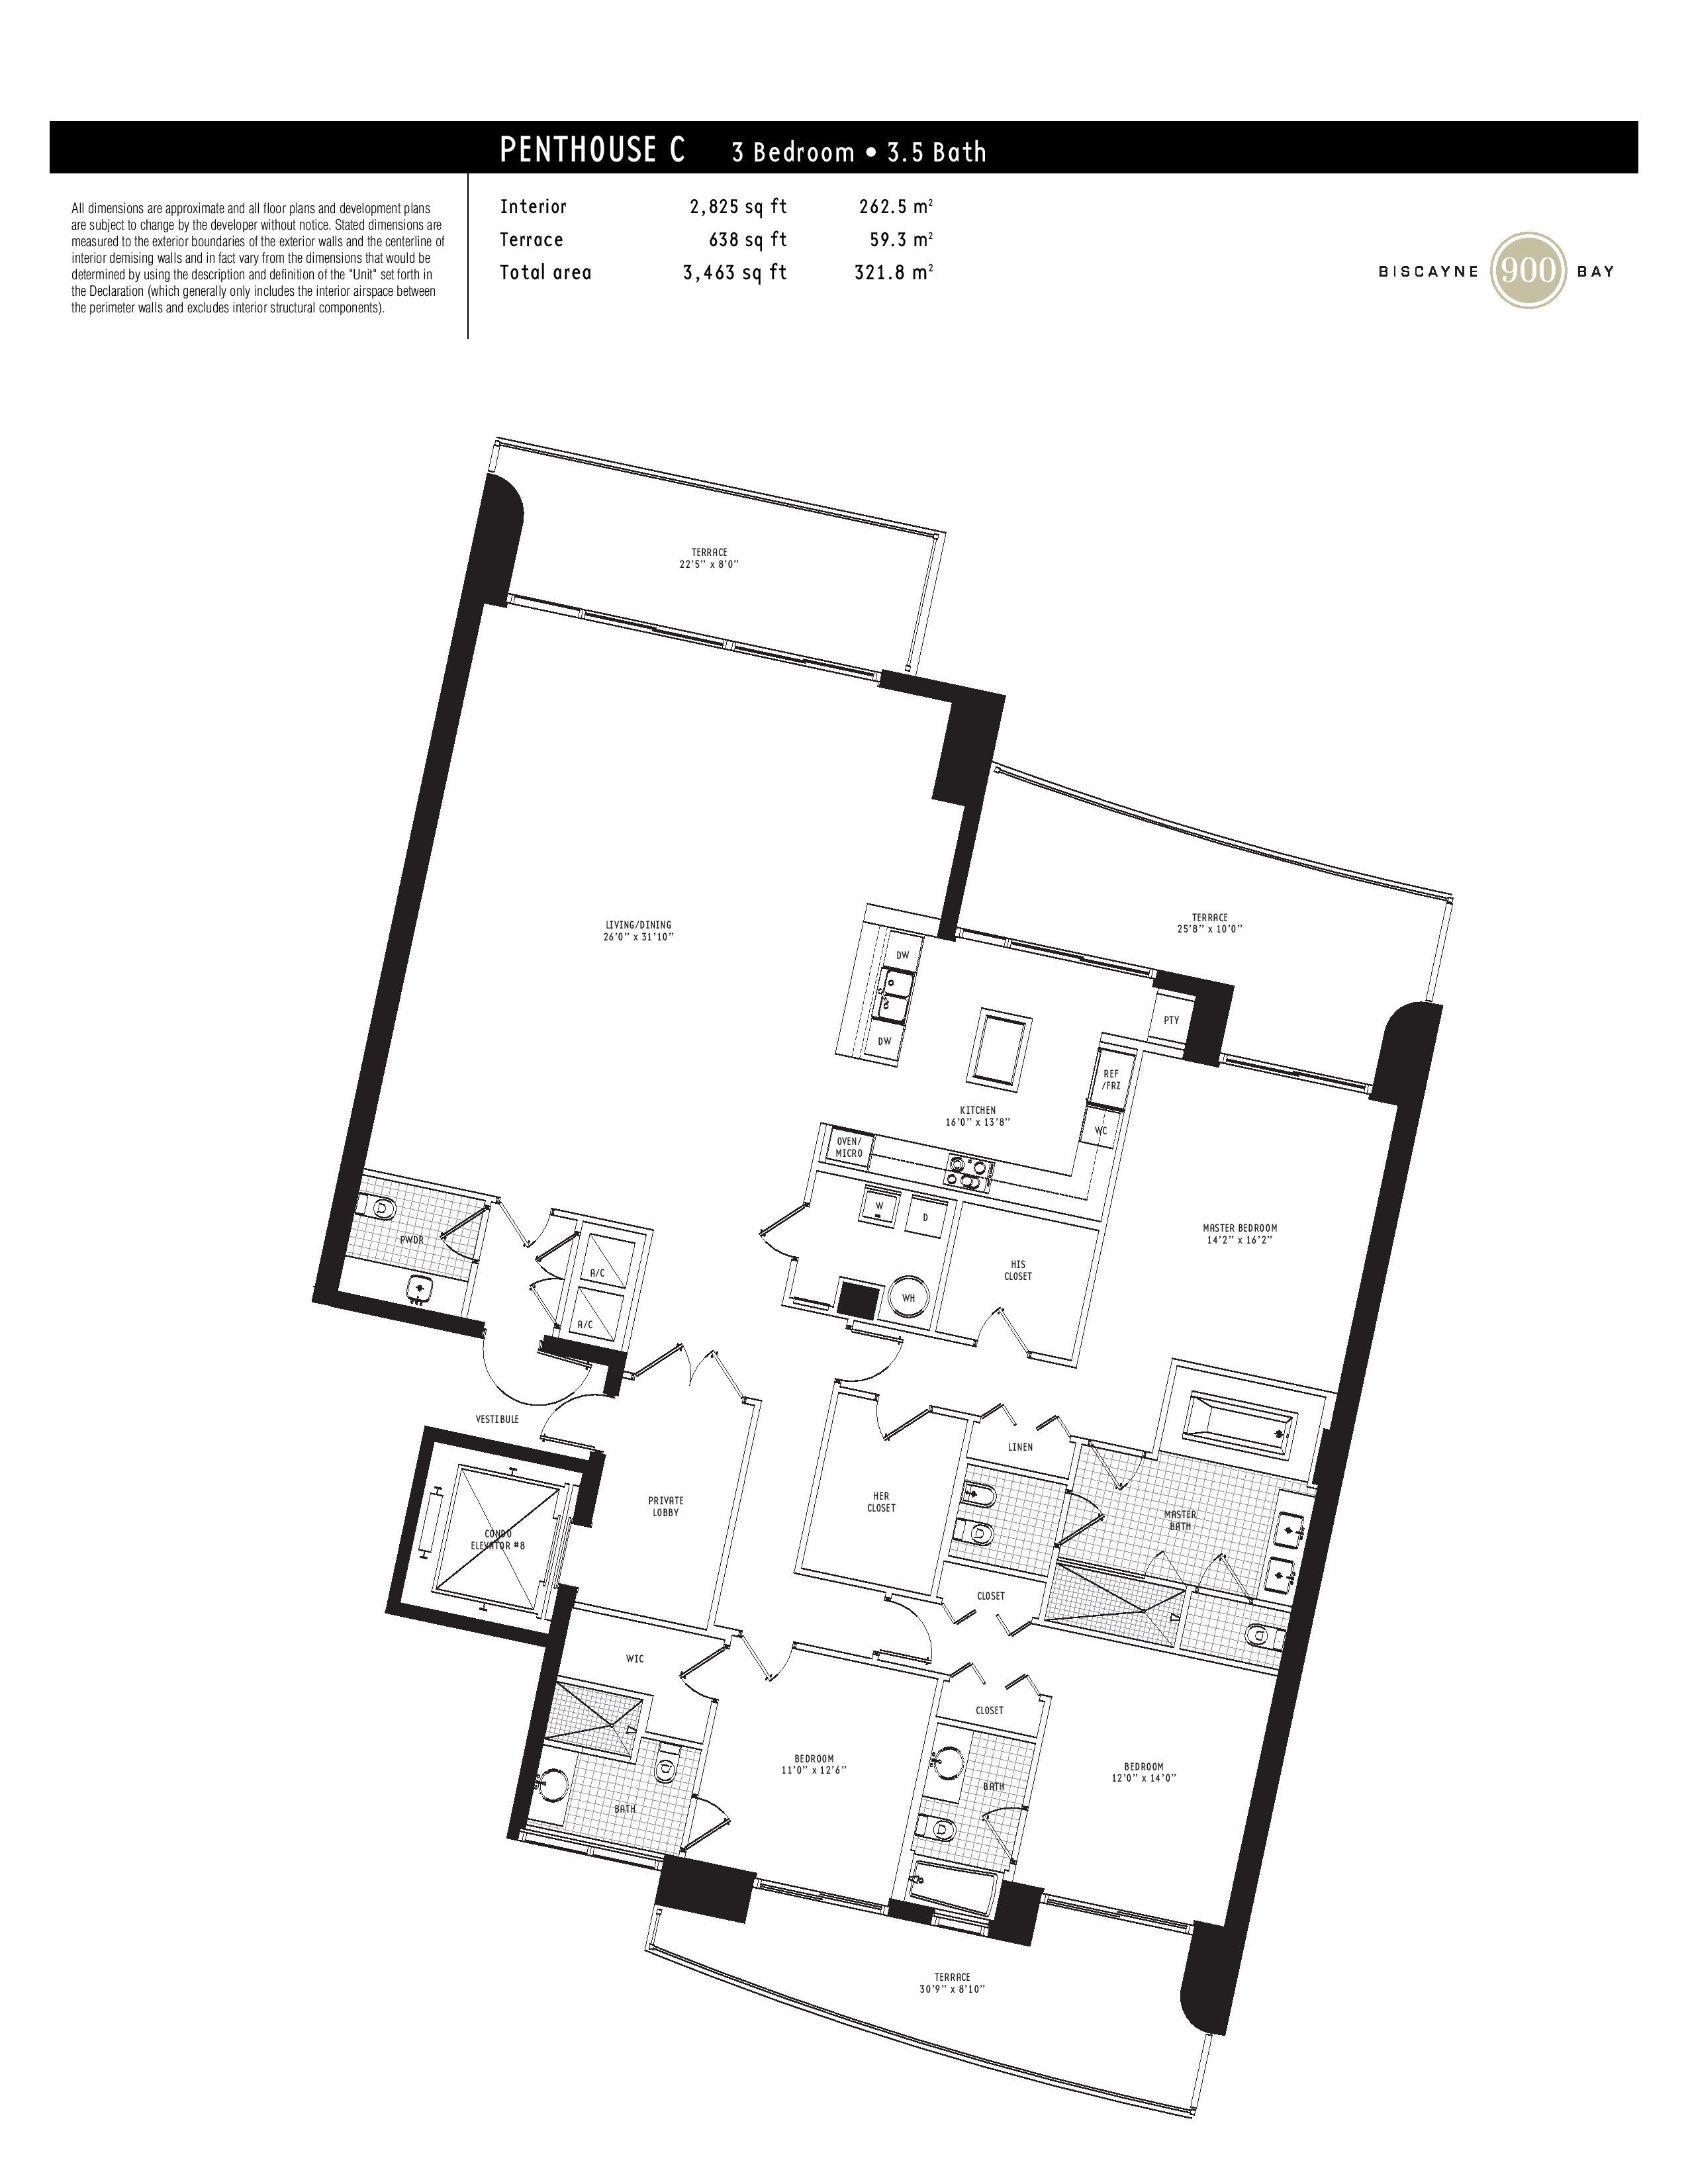 Rosemary Beach Floor Plans furthermore 19545 Galveston likewise 21886 Carlisle moreover Mi Homes Floor Plans 2006 together with Bristol Model Townhome Floor Plan. on ryland homes floor plans